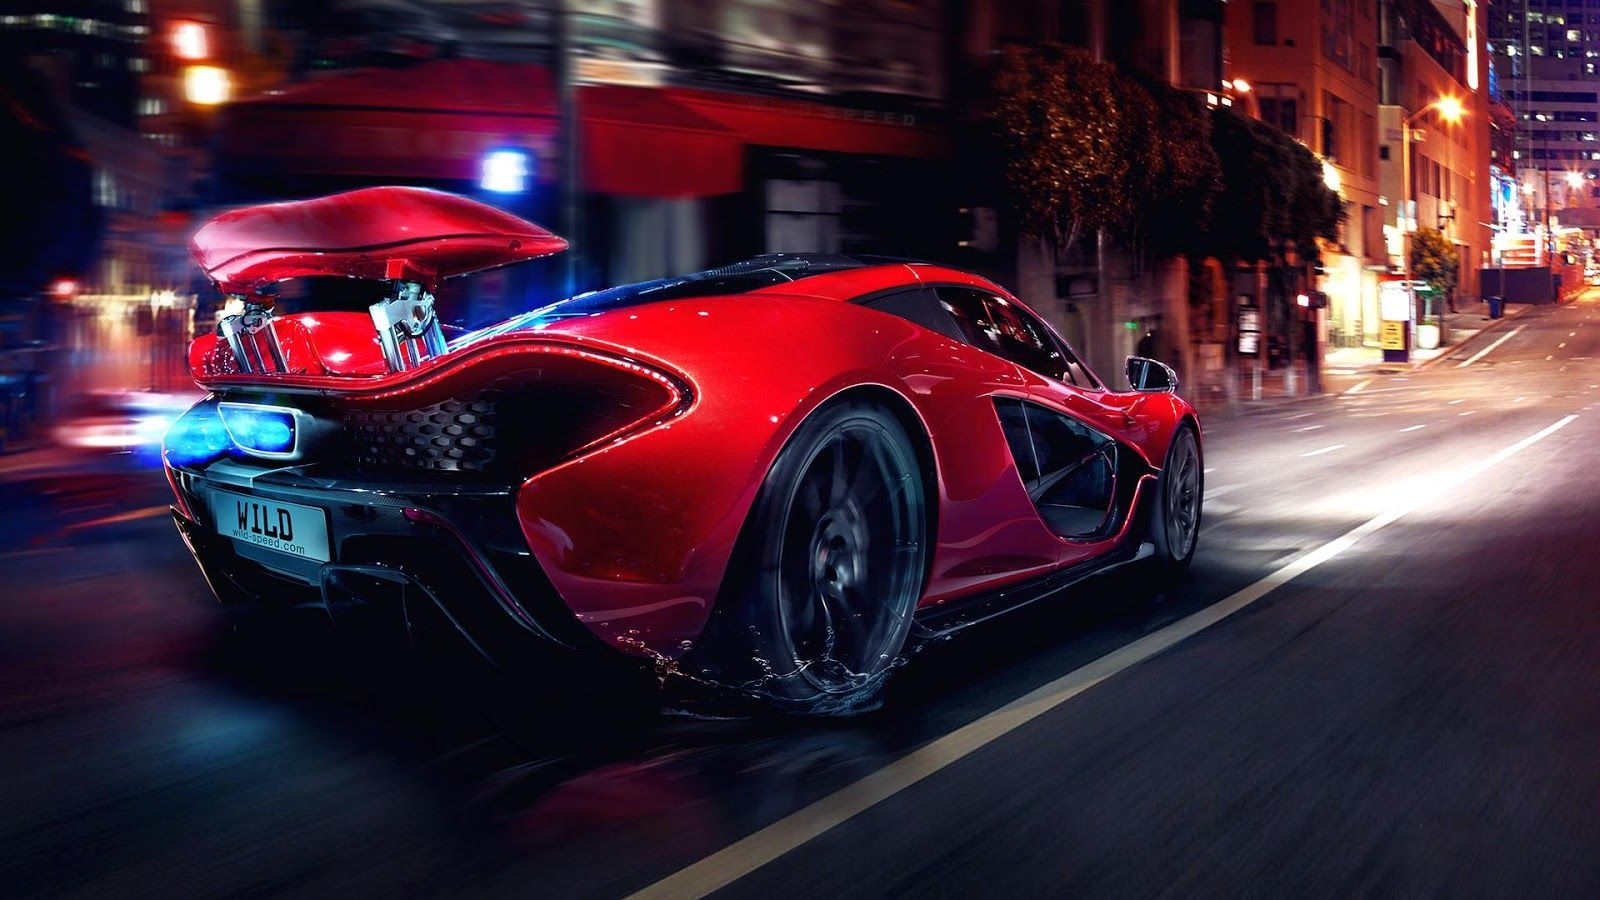 4k Car Wallpapers 0 1 Apk Download Android Personalization Apps Sport Cars Super Cars Sports Cars